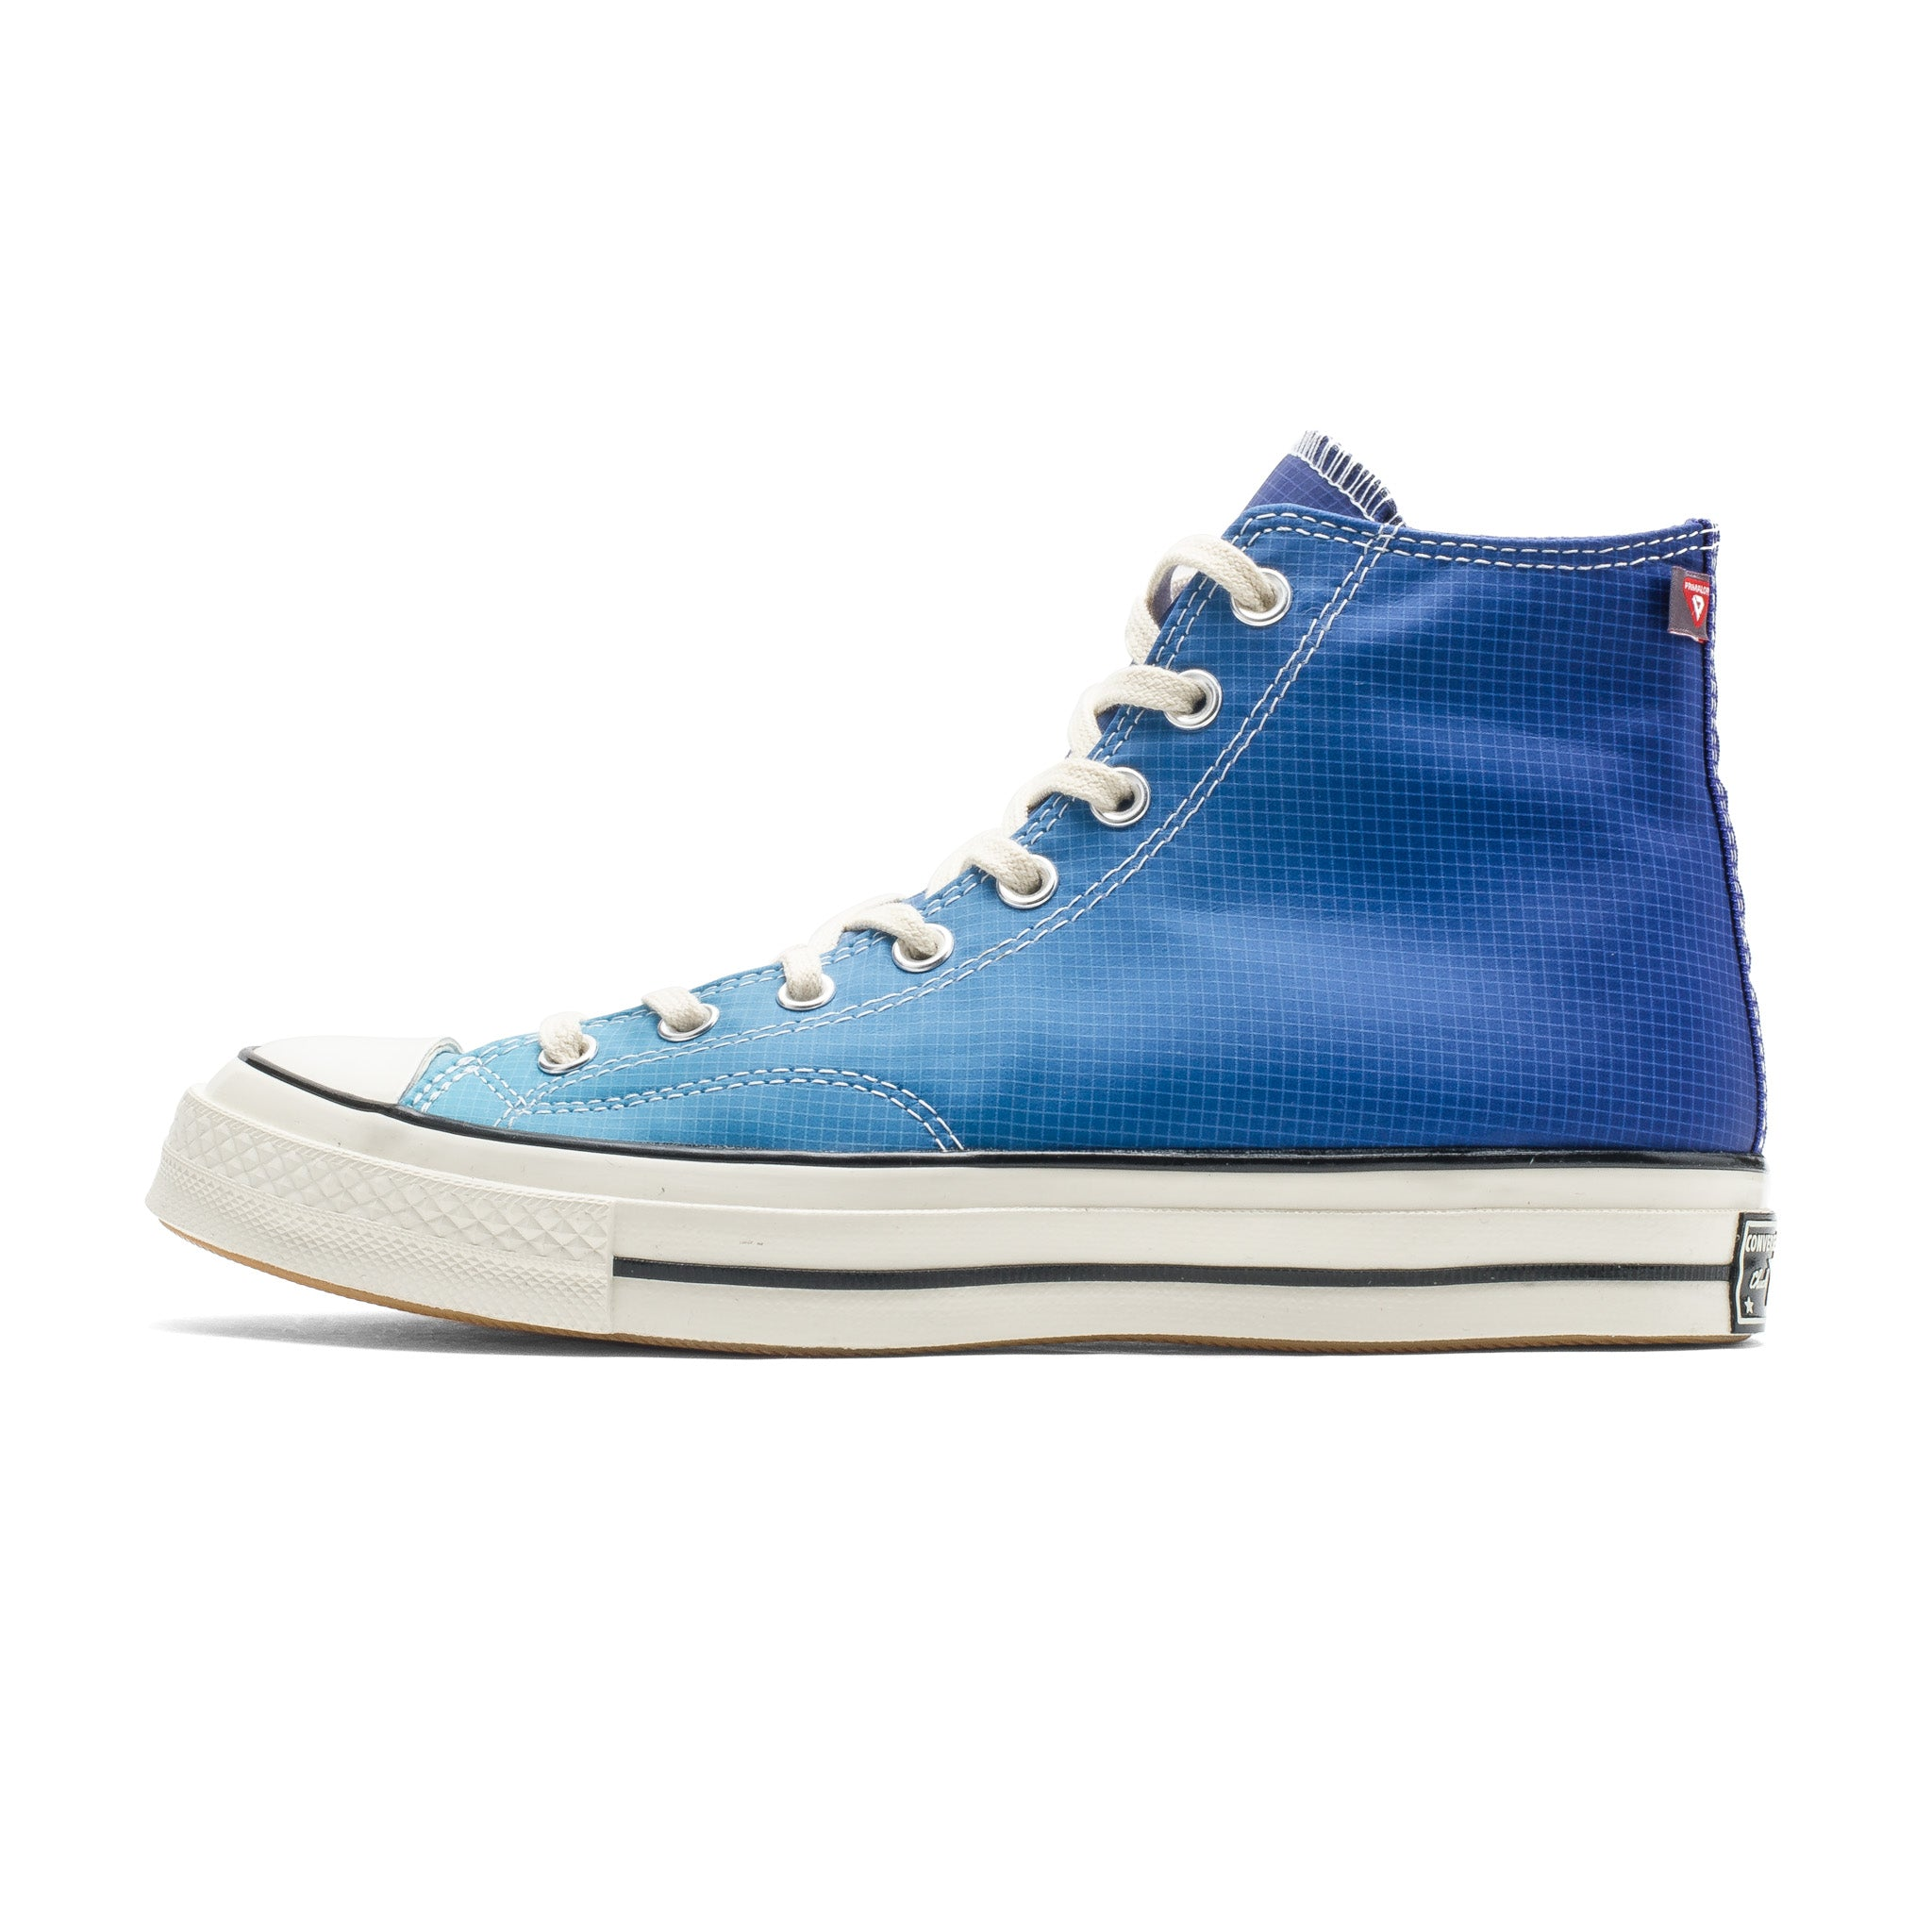 Chuck 70 HI 168112C Royal